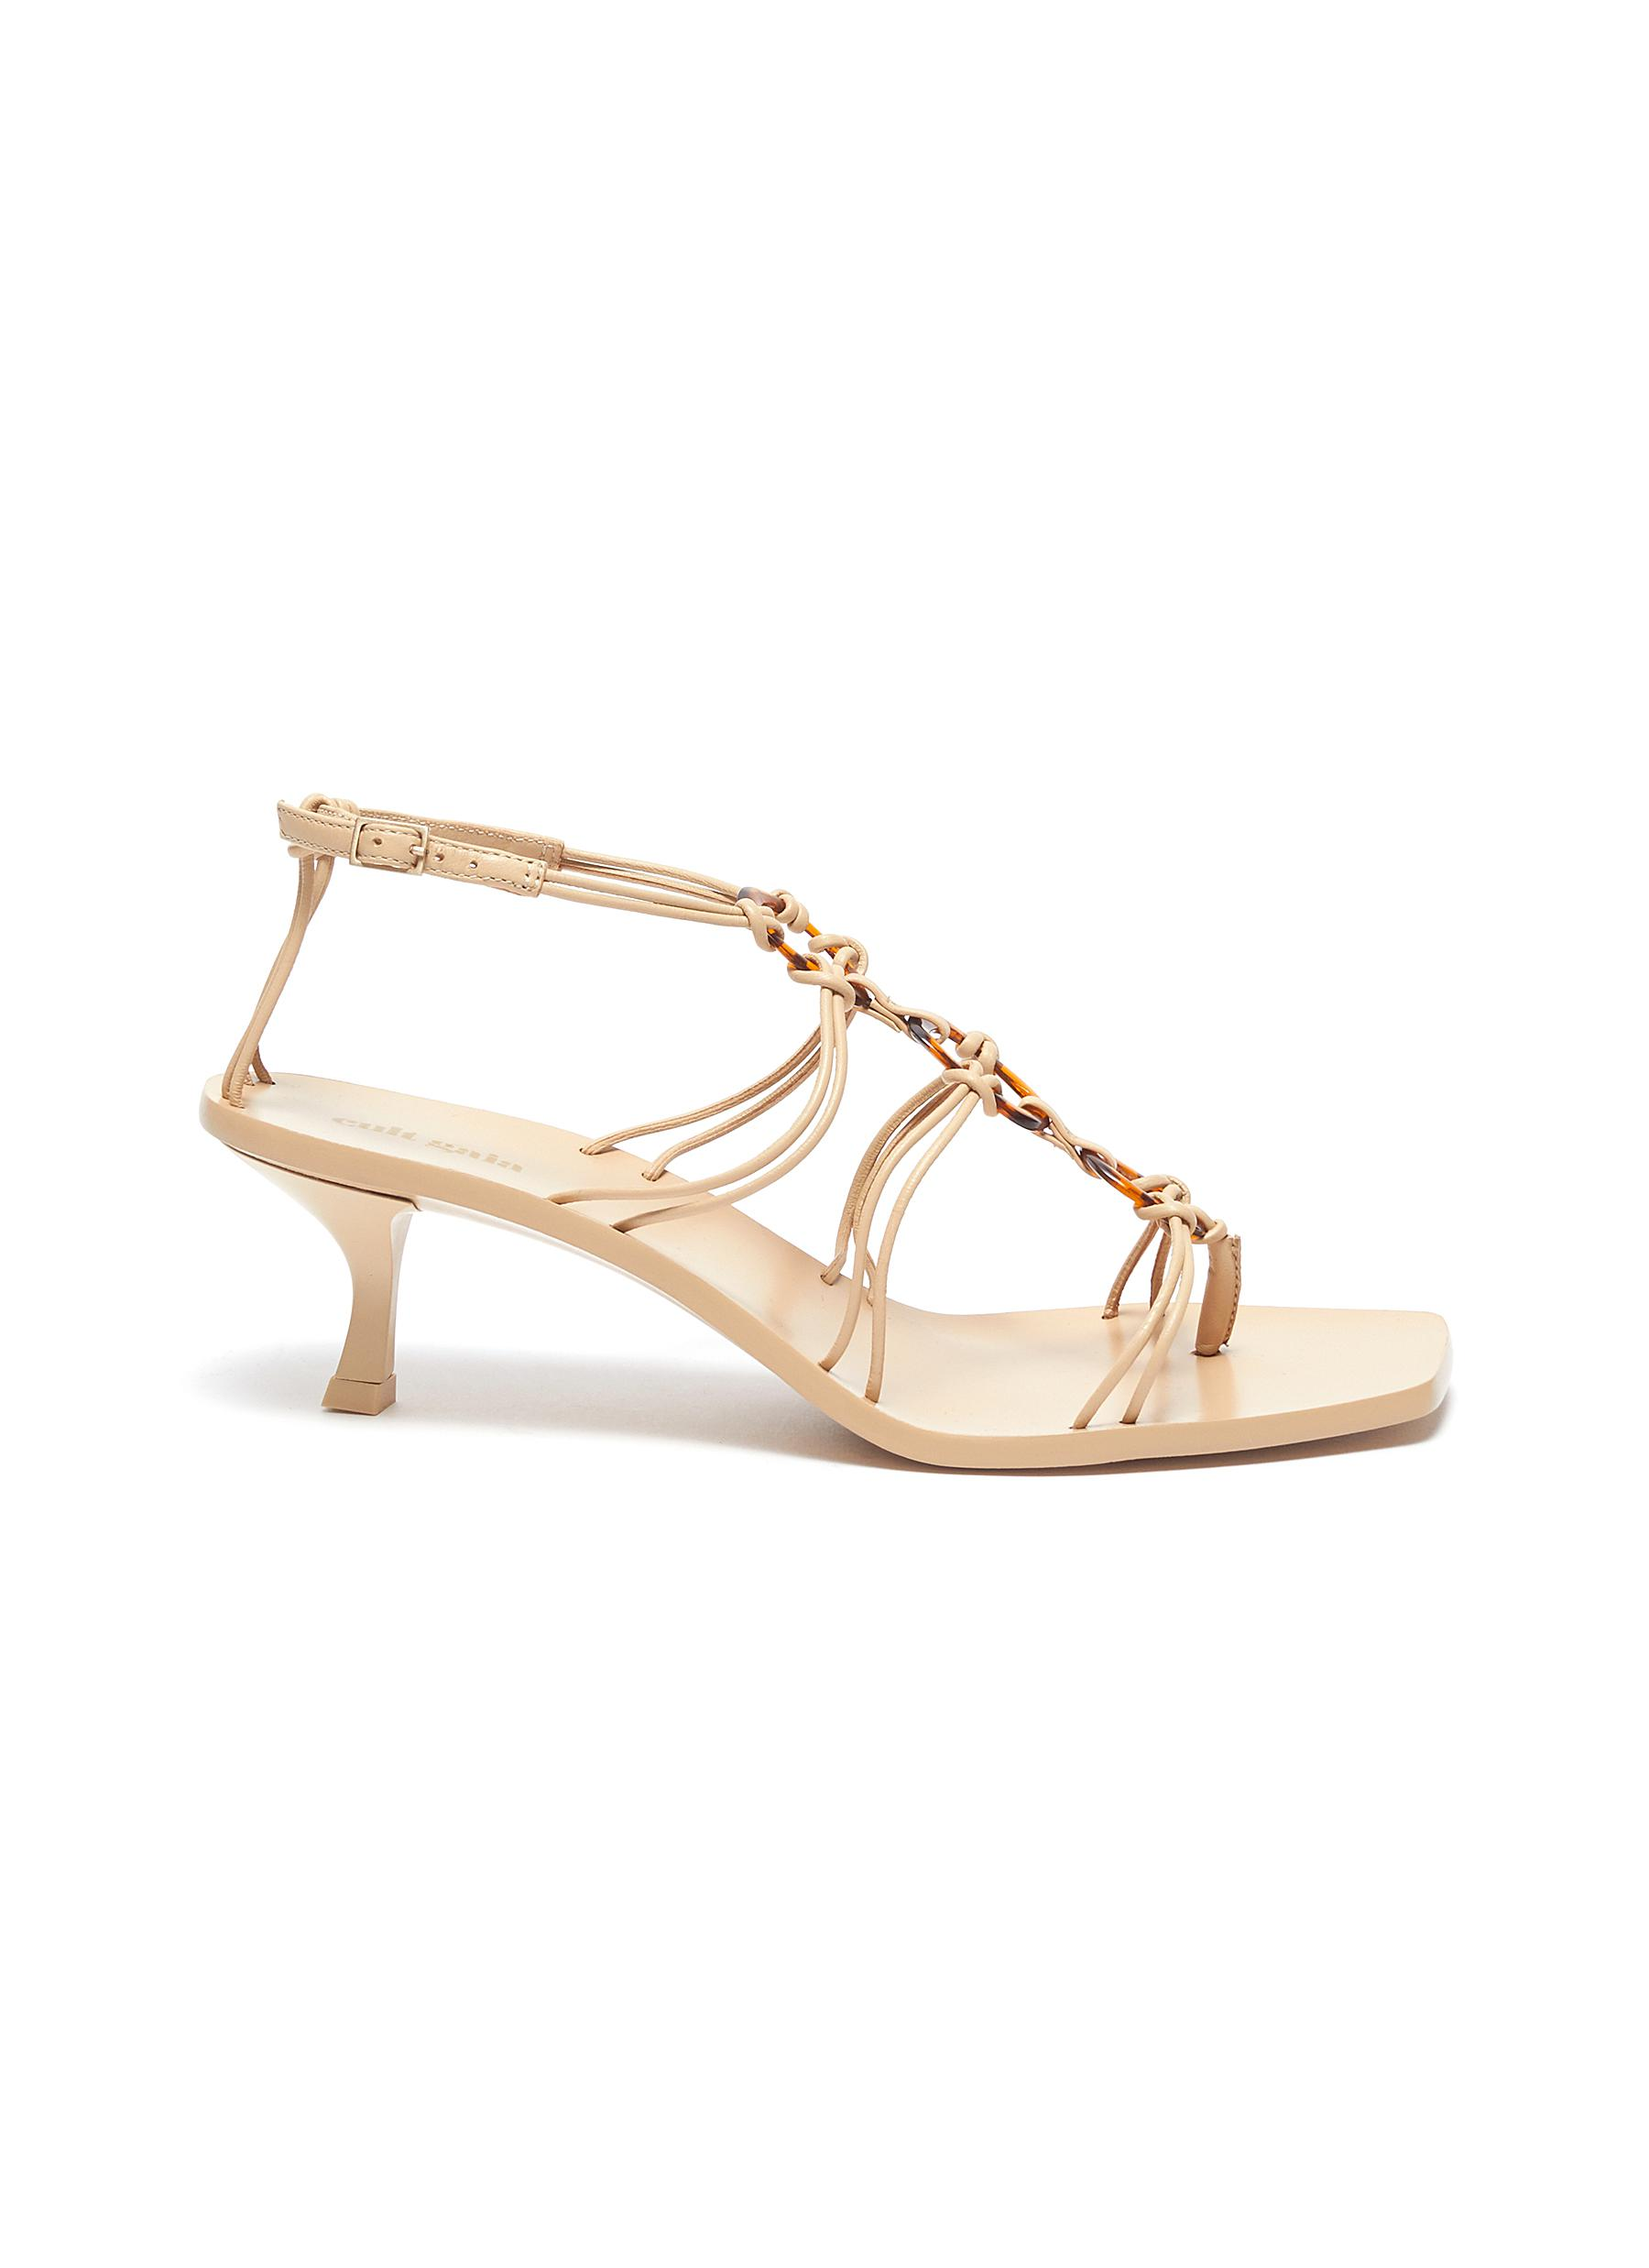 Cult Gaia Mid Heels Ziba strappy ring sandals